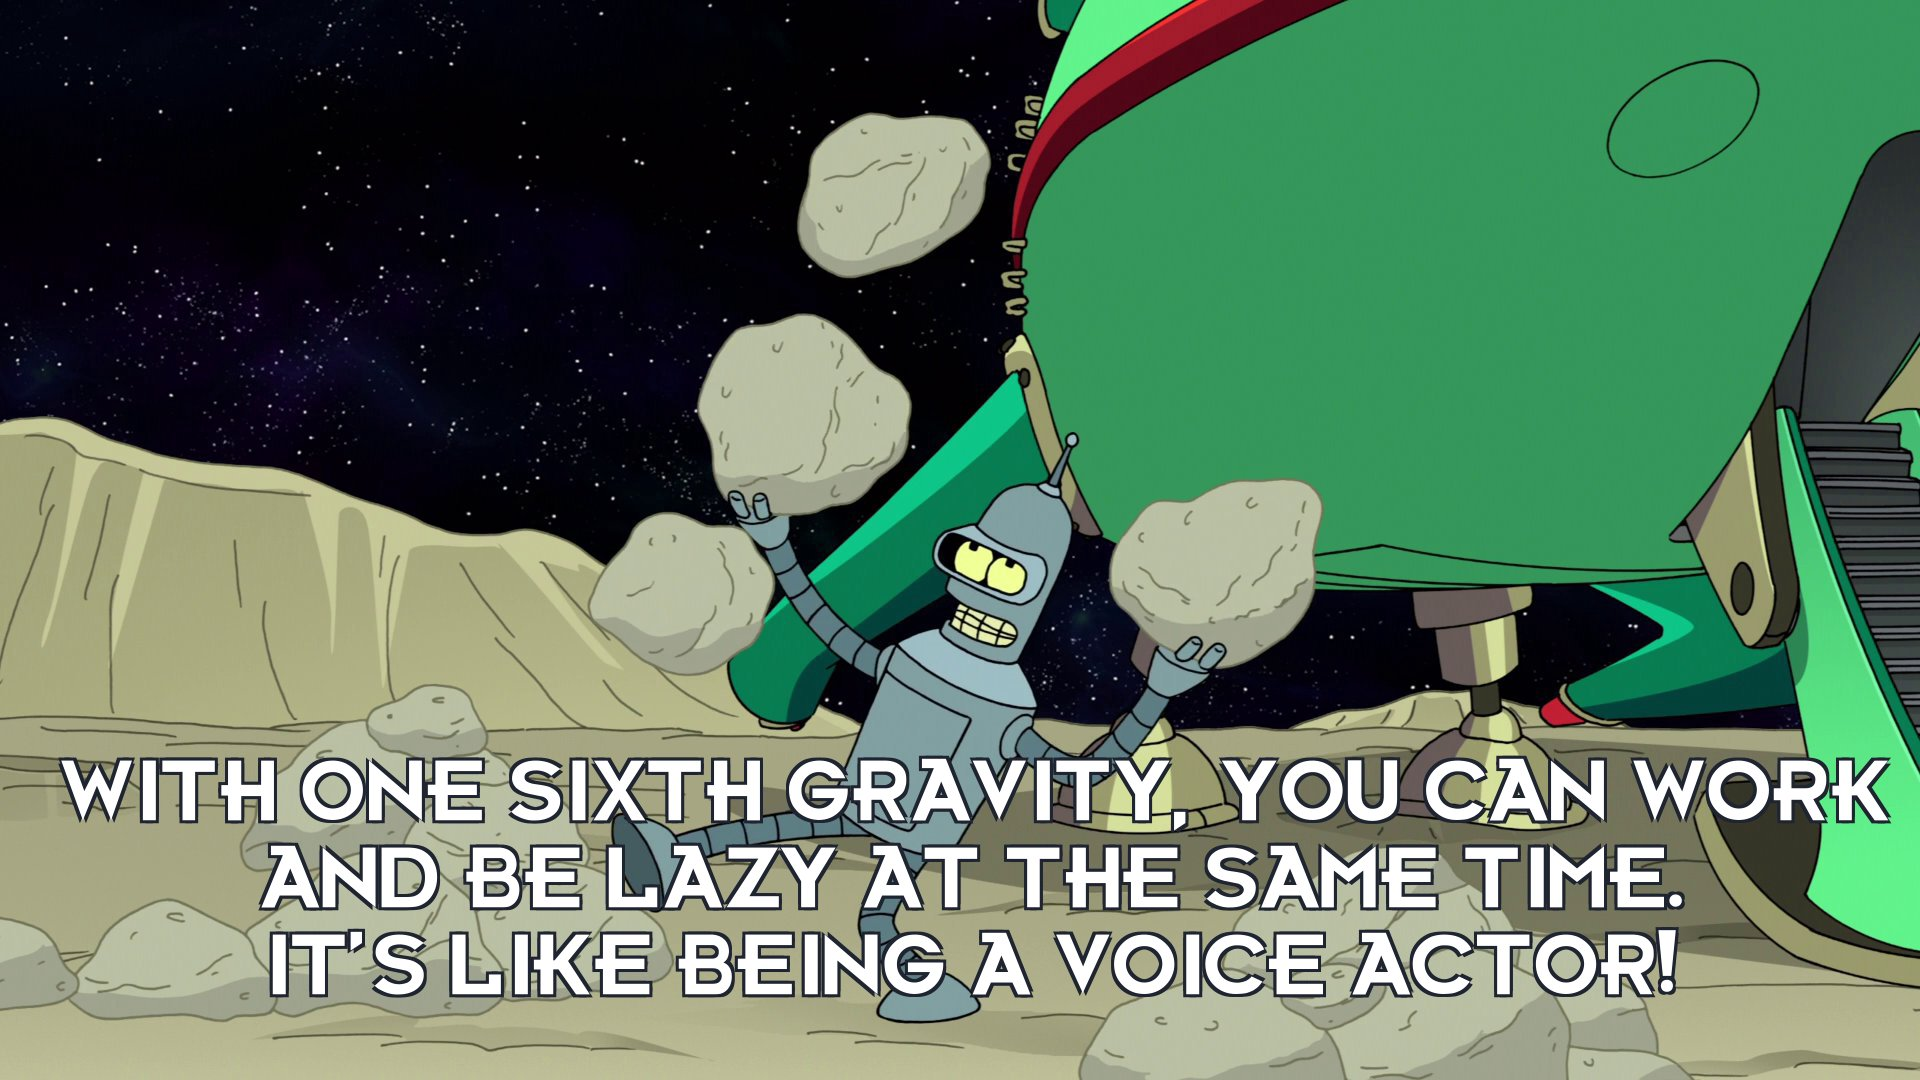 Bender Bending Rodriguez: With one sixth gravity, you can work and be lazy at the same time. It's like being a voice actor!